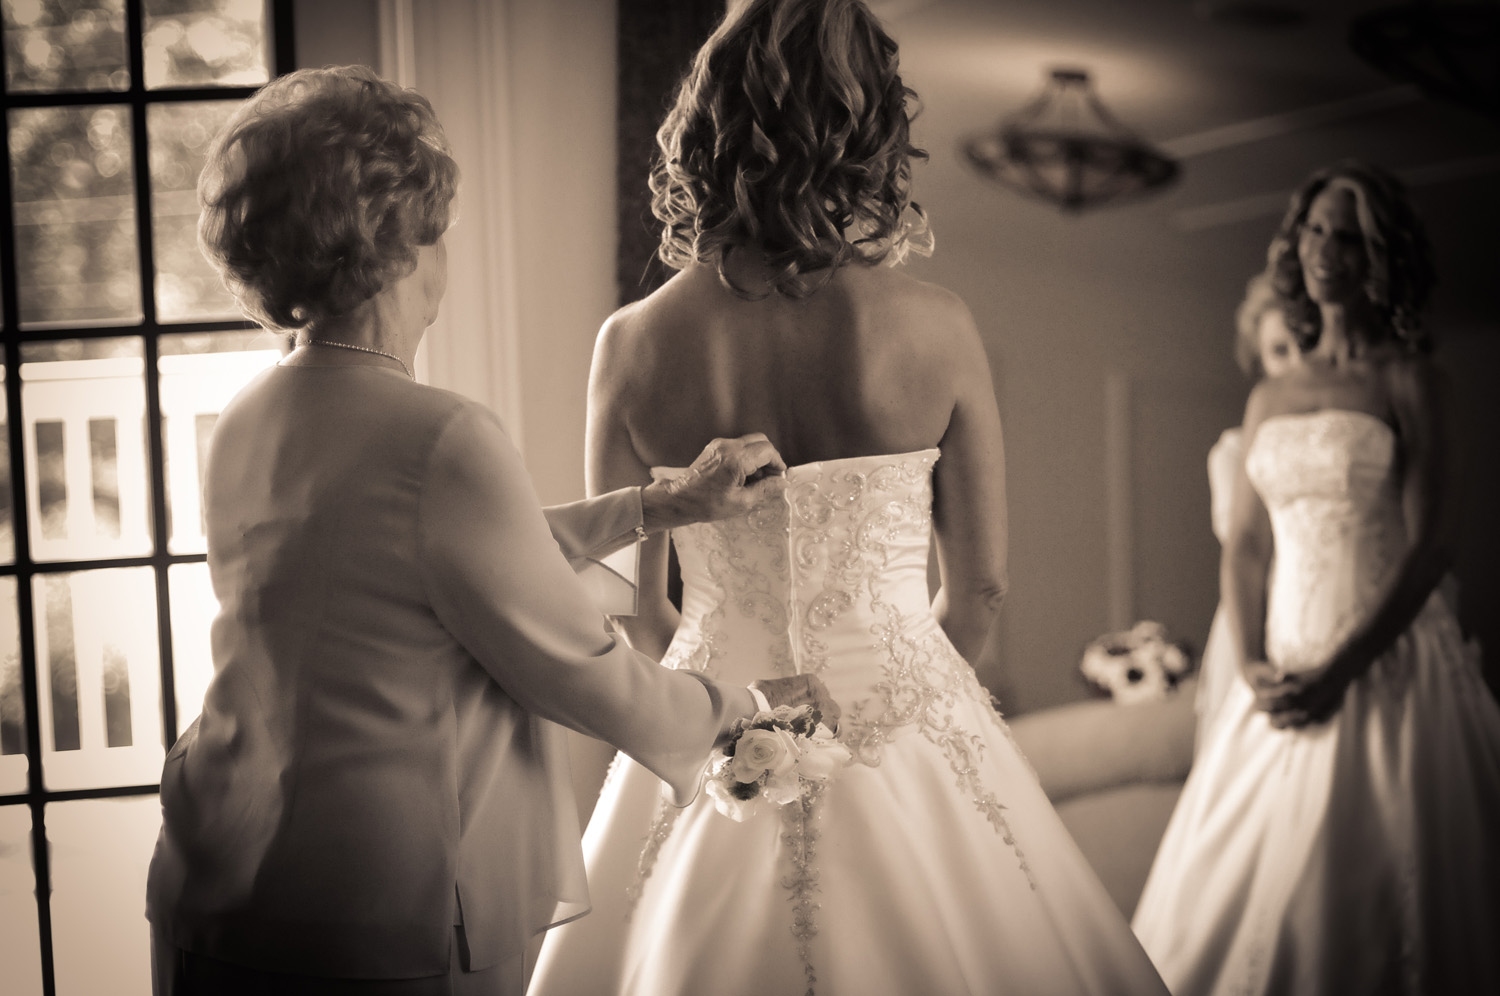 lacing up bride's gown at Carriage House / Meyer Photography